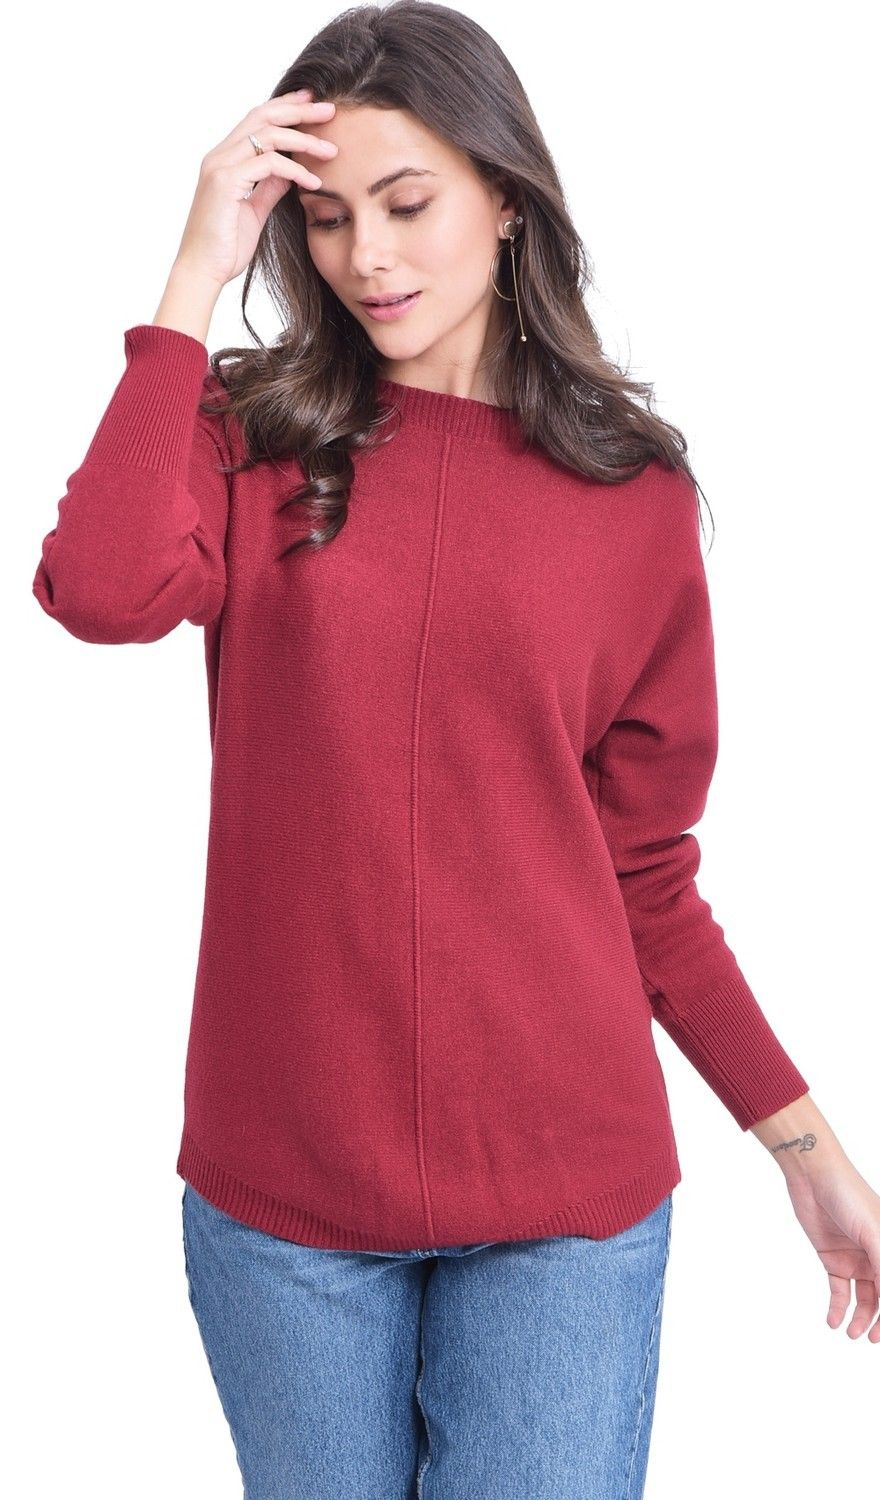 Assuili Boat Neck Batwing Sleeve Sweater in Maroon